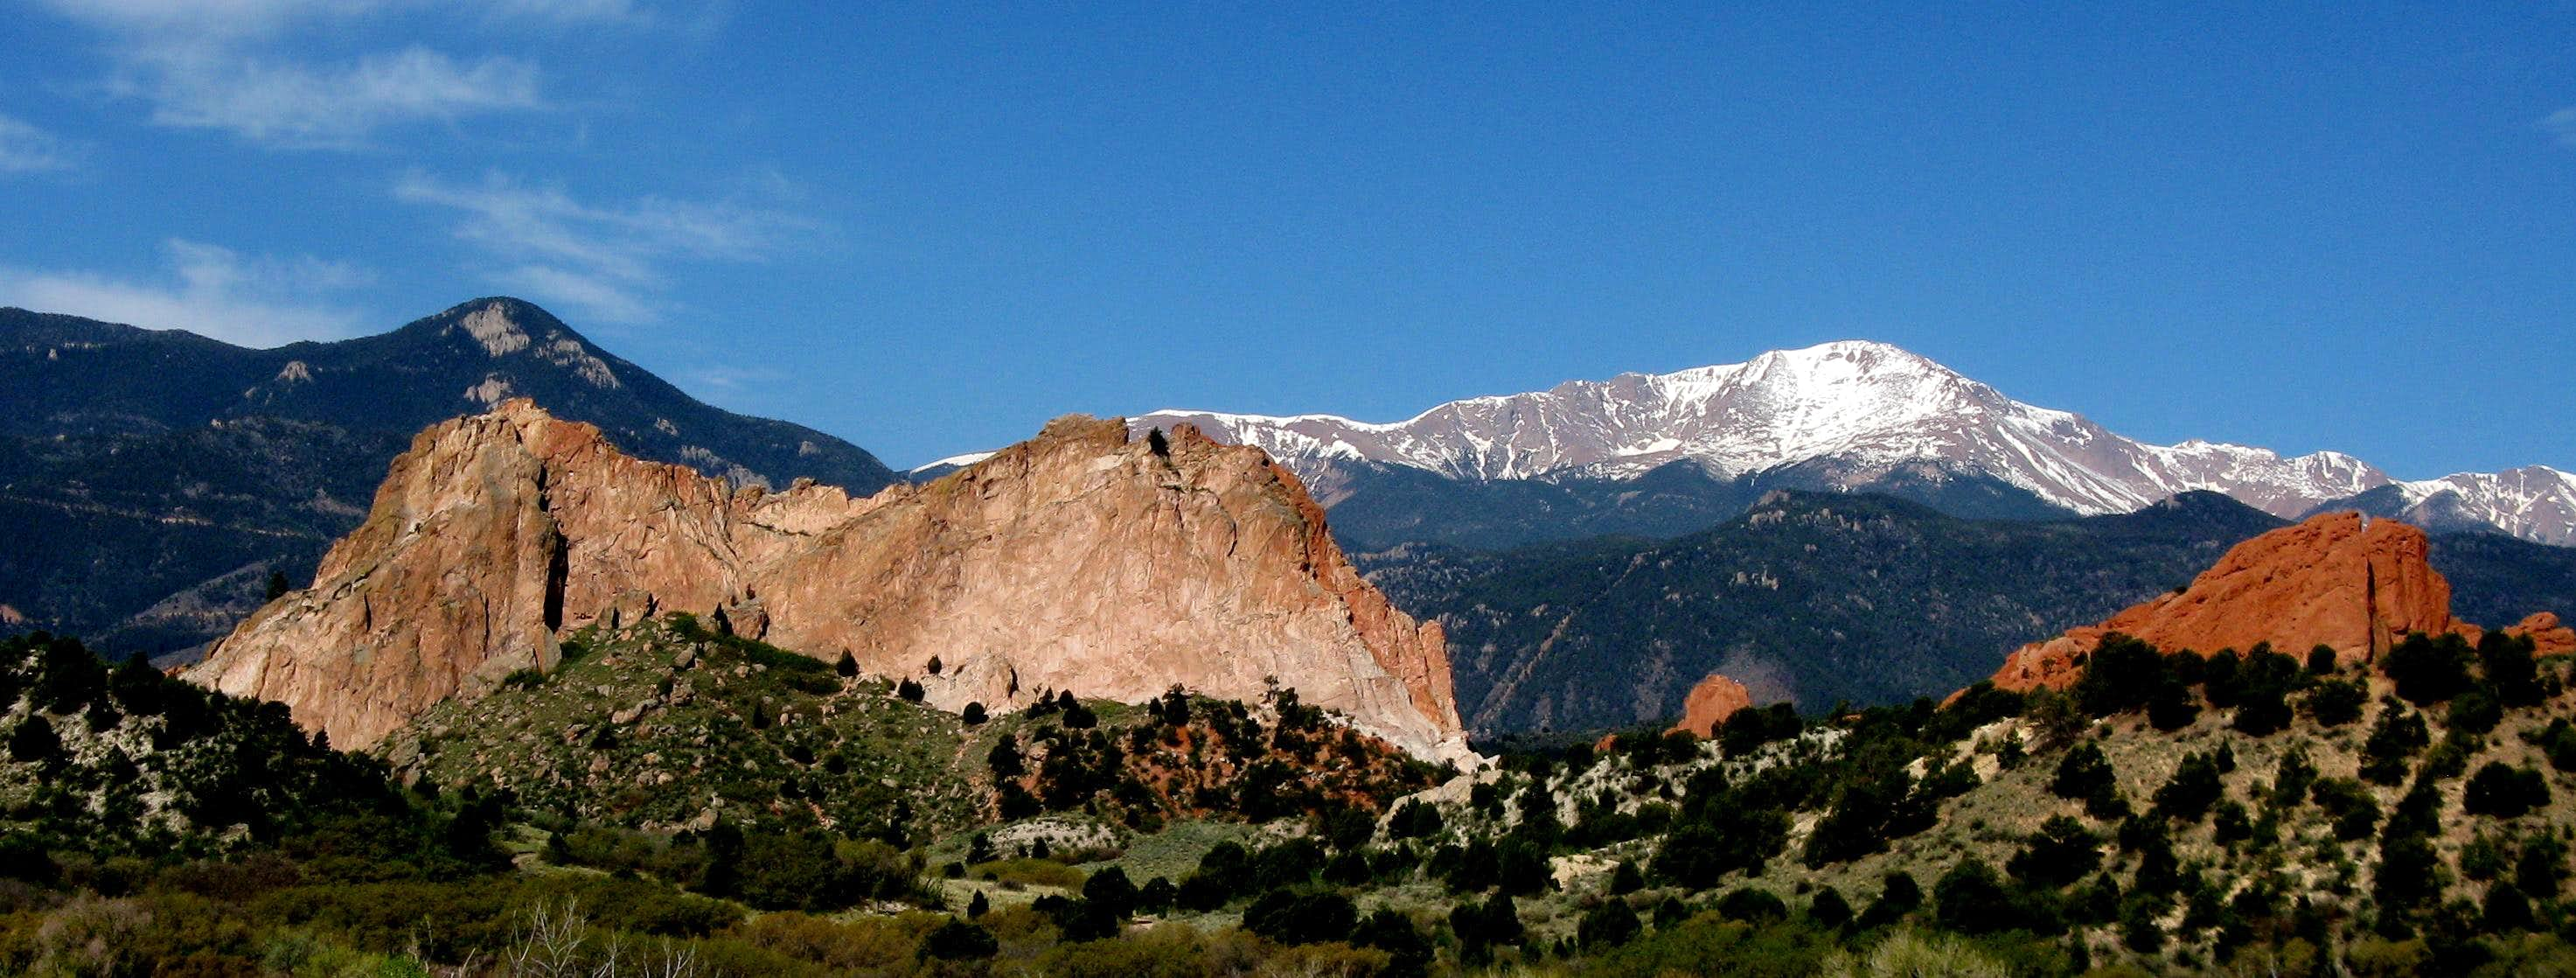 Grey Rock via New Era: A Garden of the Gods Mega-Classic